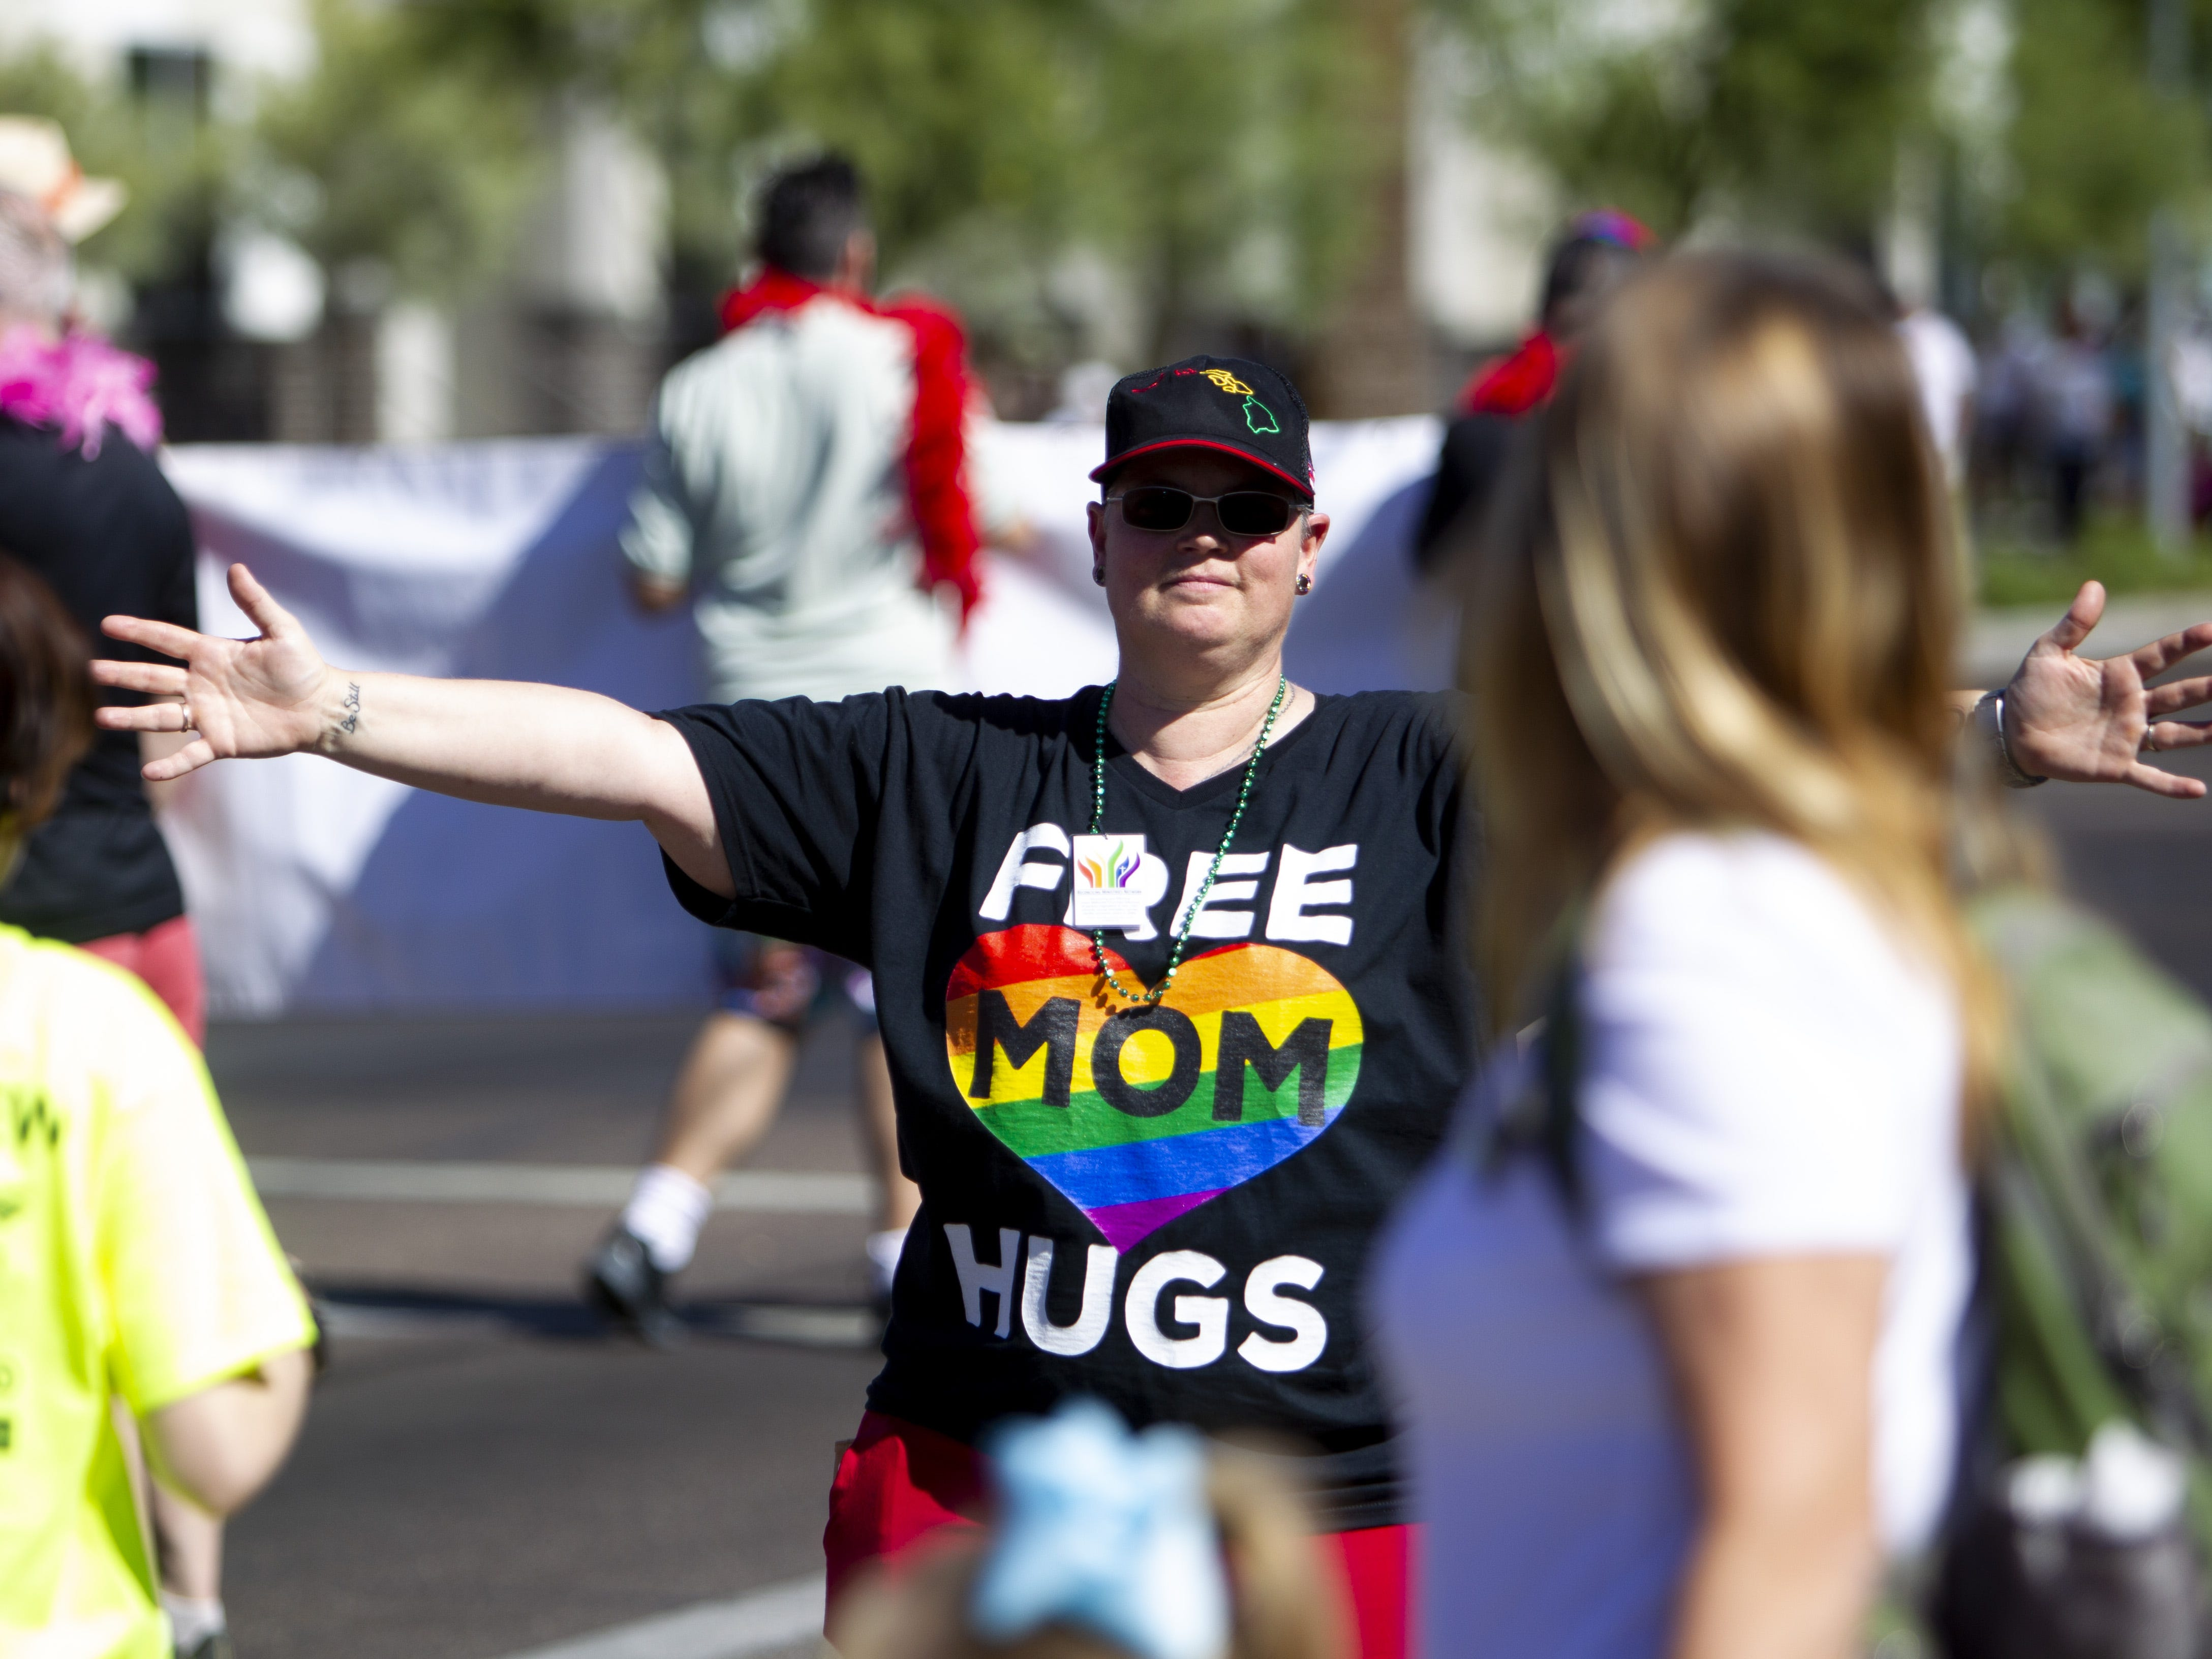 """A woman offers """"free mom hugs"""" in the staging area before the Phoenix Pride Parade on April 7, 2019."""